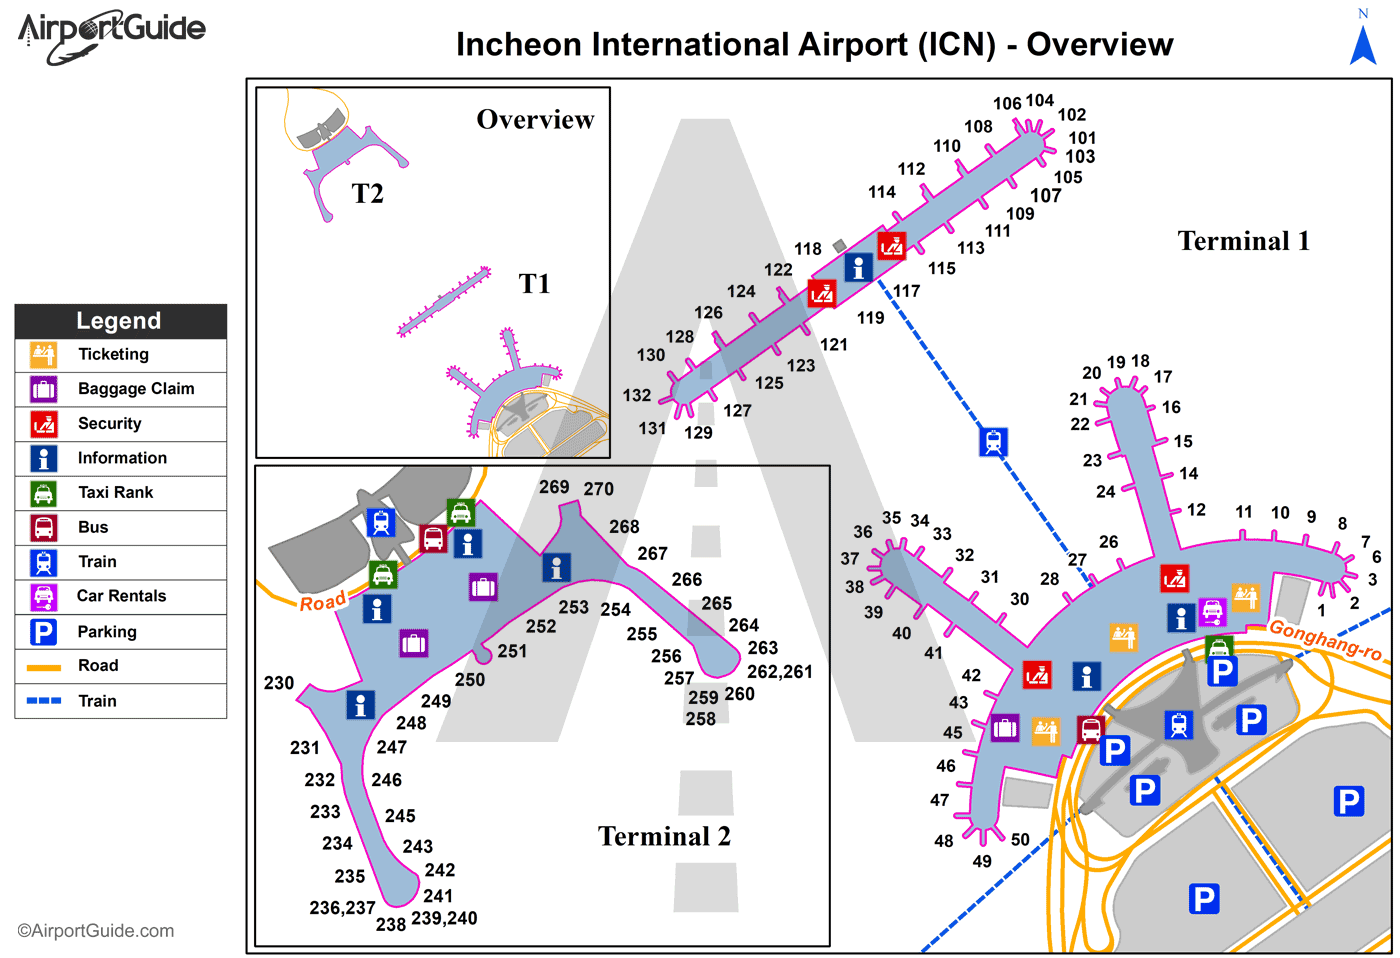 Incheon International Airport - RKSI - ICN - Airport Guide